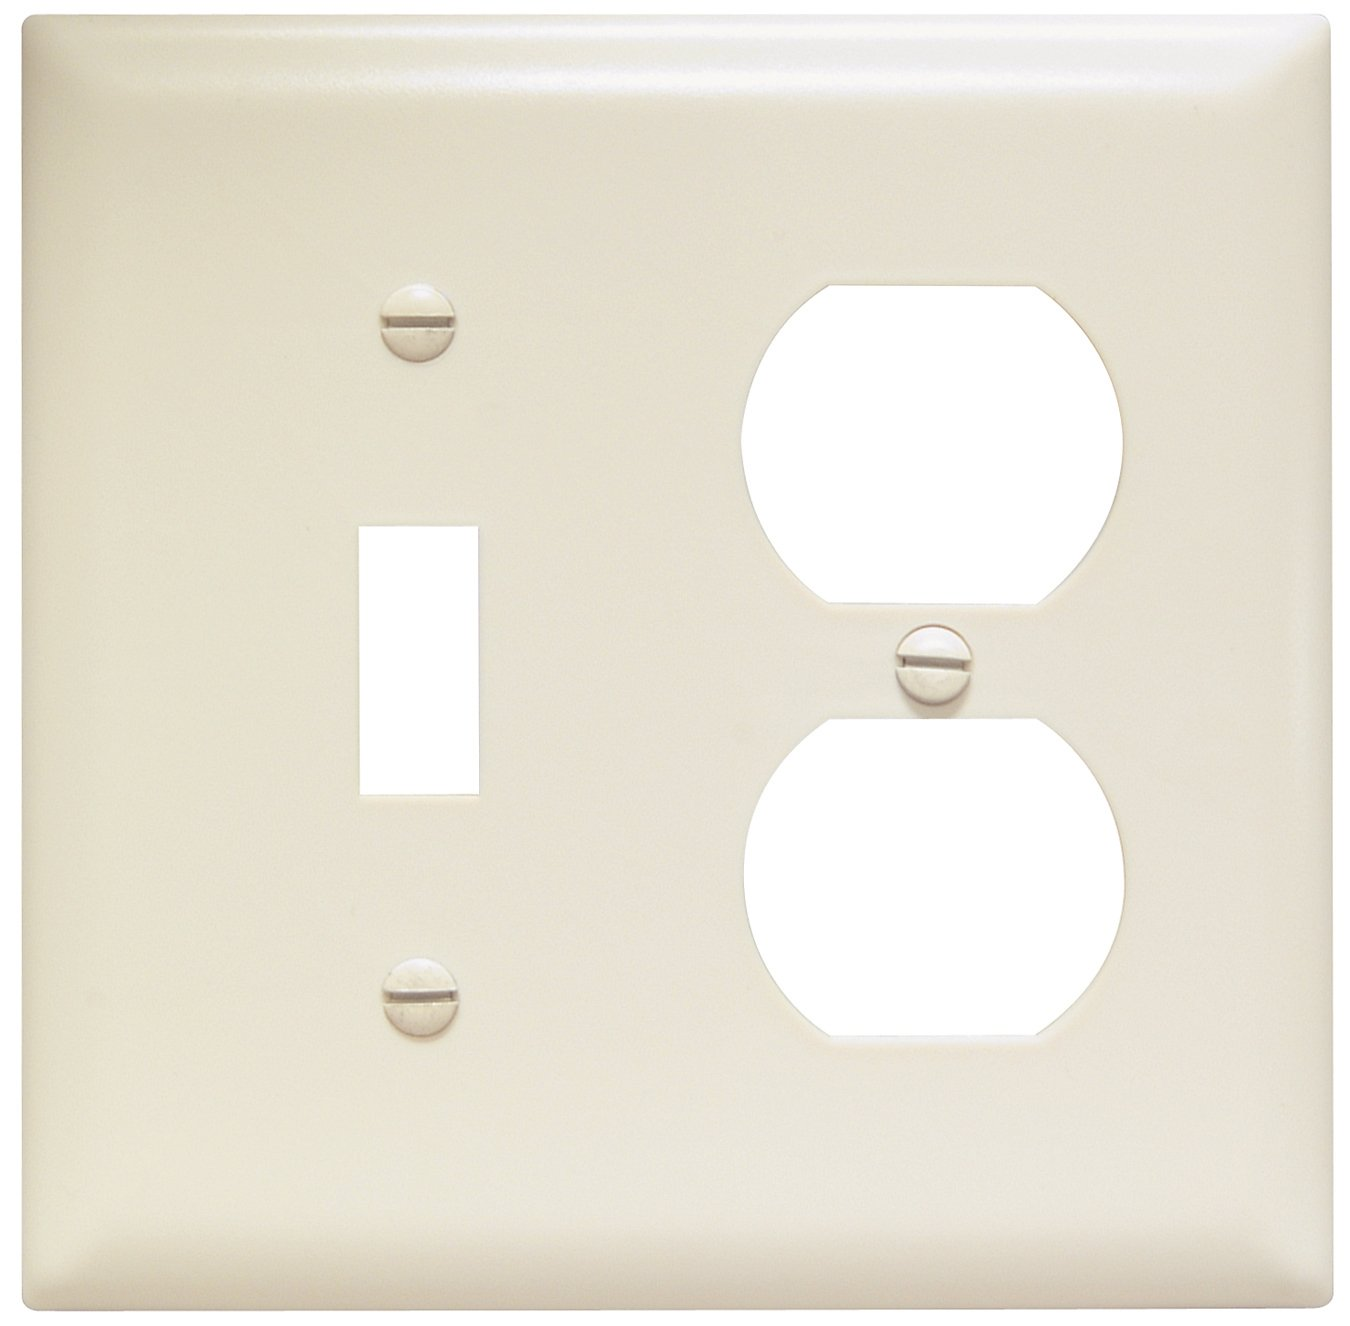 Legrand - Pass & Seymour TP18LACC12 Trade Master Nylon Combination Openings Wall Plate with One Toggle Switch and One Duplex Receptacle Opening, Two Gang, Light Almond